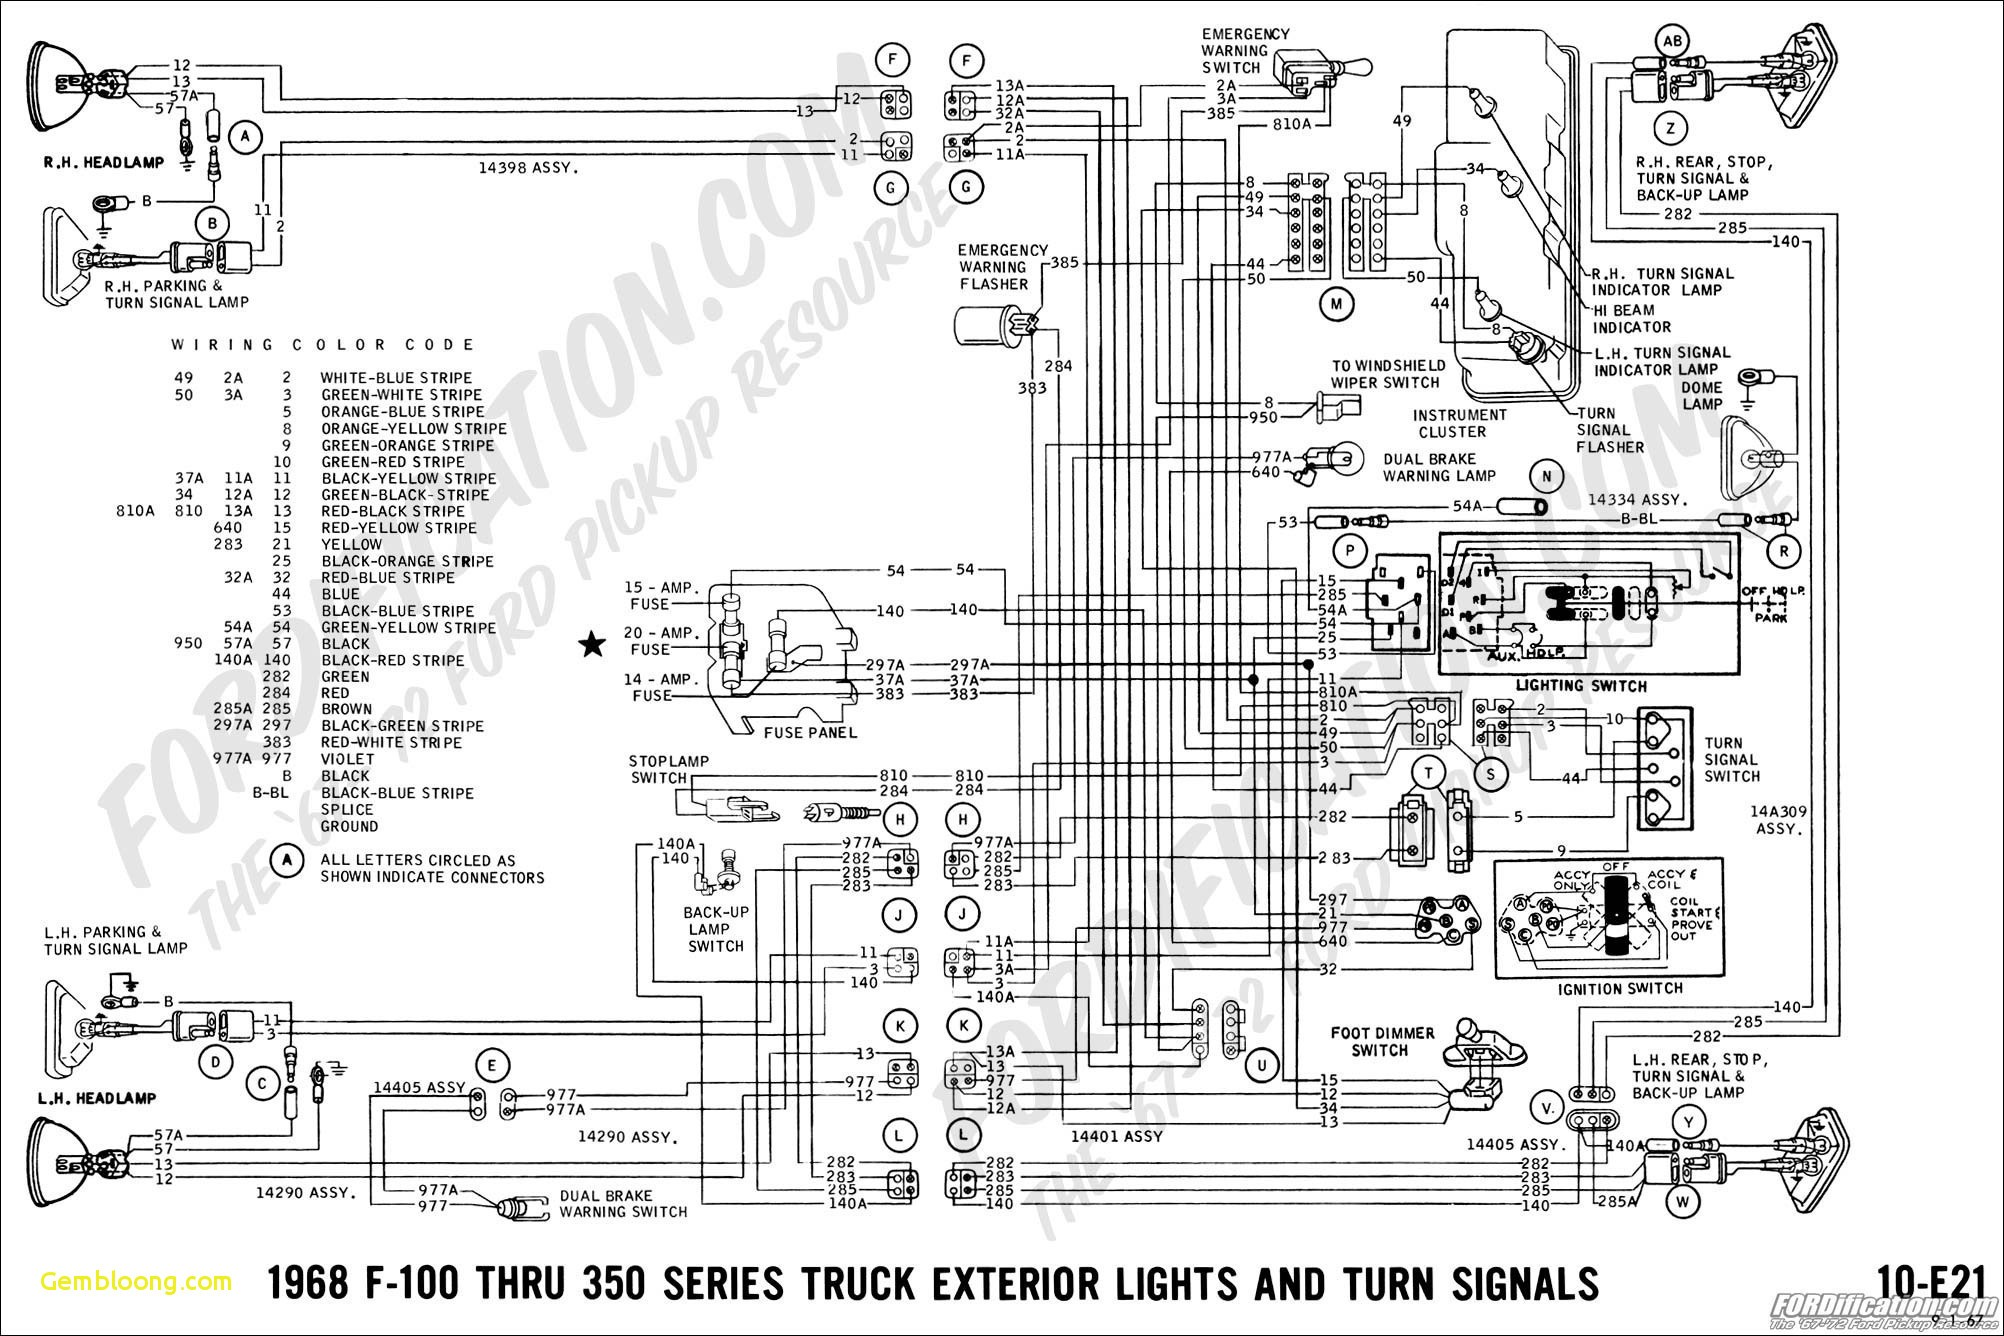 Ford F700 Truck Wiring Diagrams | Wiring Diagram